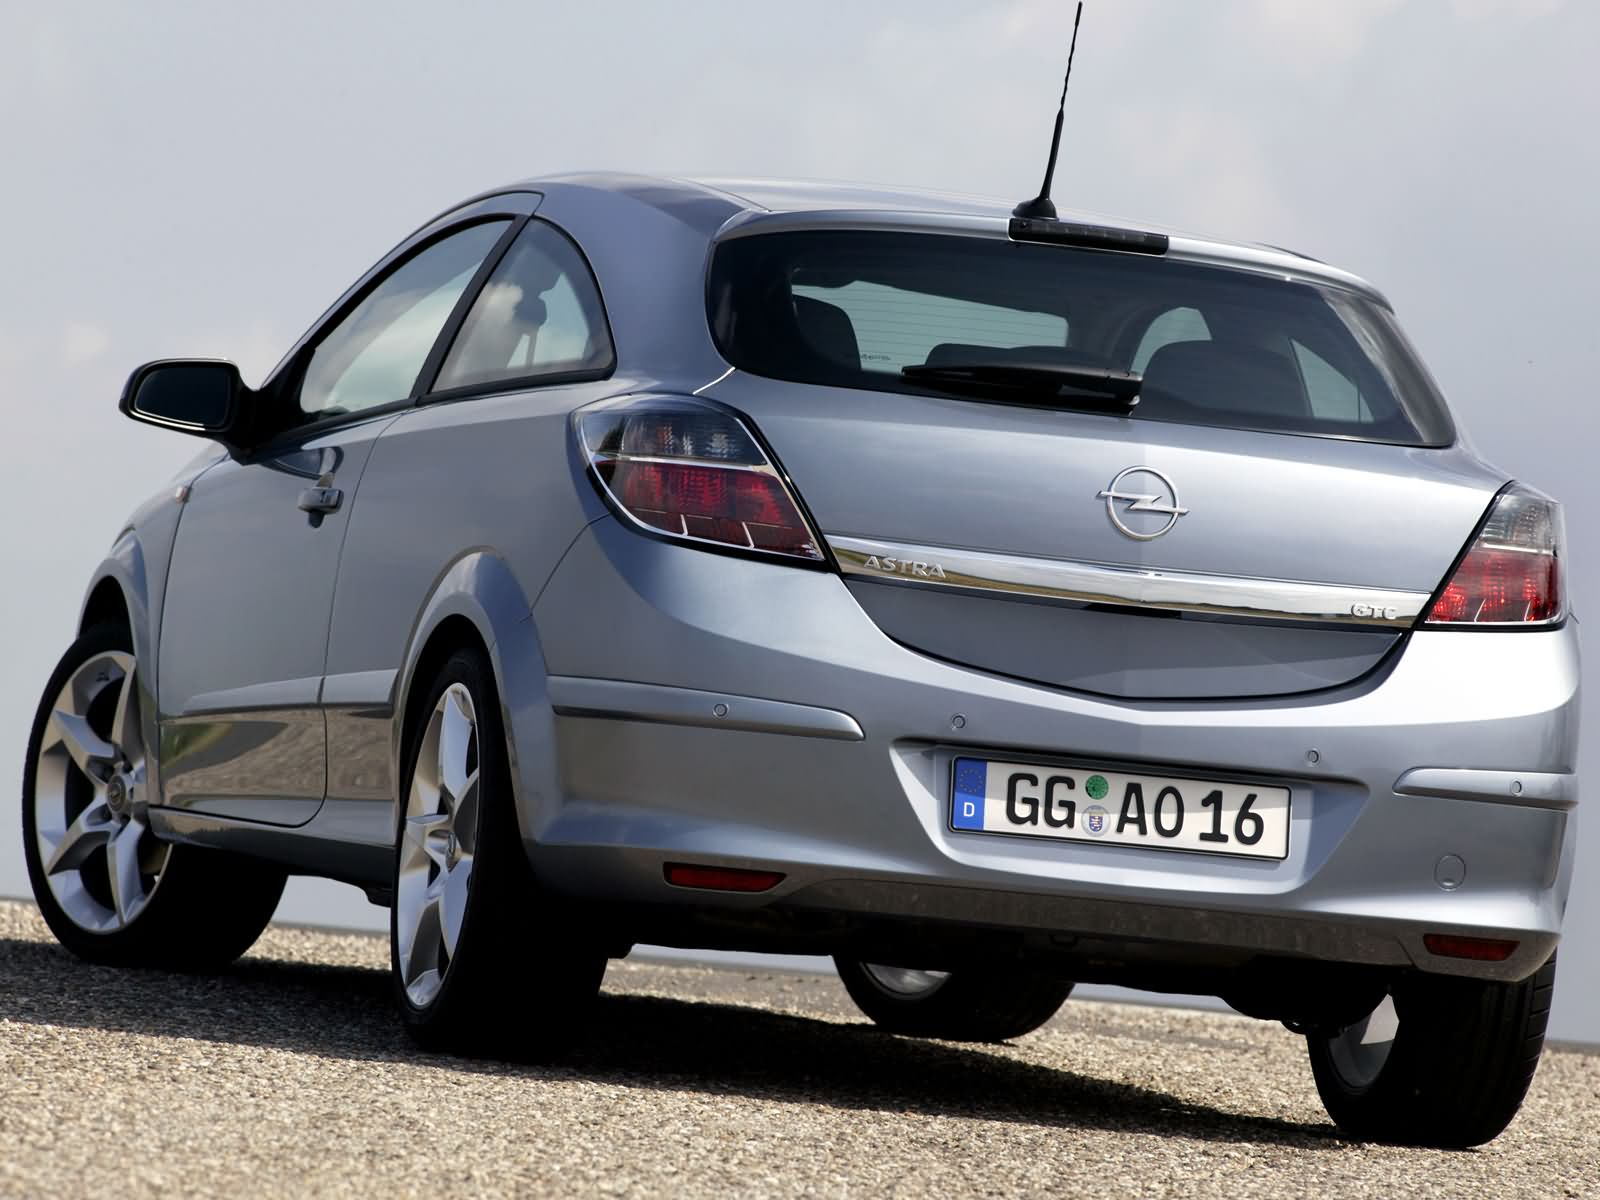 2005 opel astra h gtc pictures information and specs. Black Bedroom Furniture Sets. Home Design Ideas